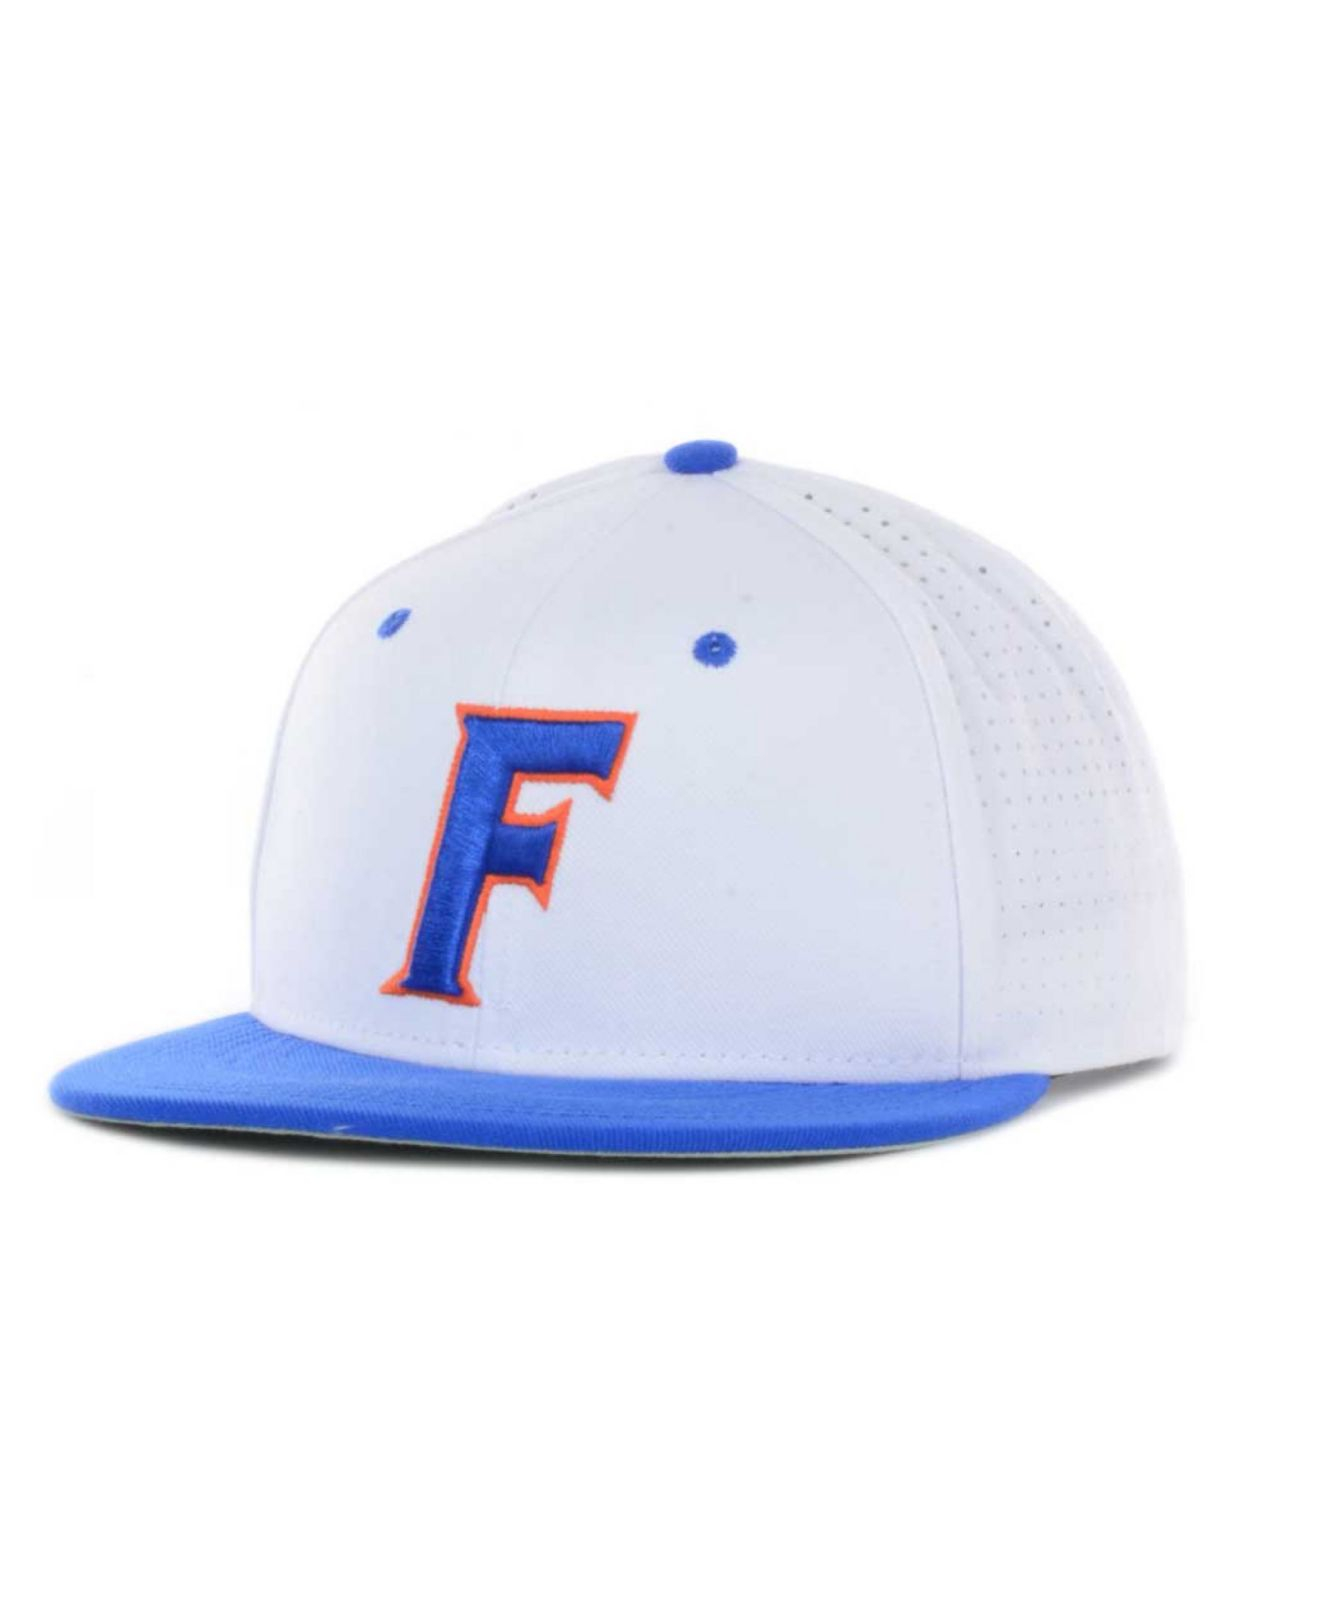 info for d46cb d2605 ... closeout lyst nike florida gators authentic vapor fitted cap in white  for men 23594 7fd5f